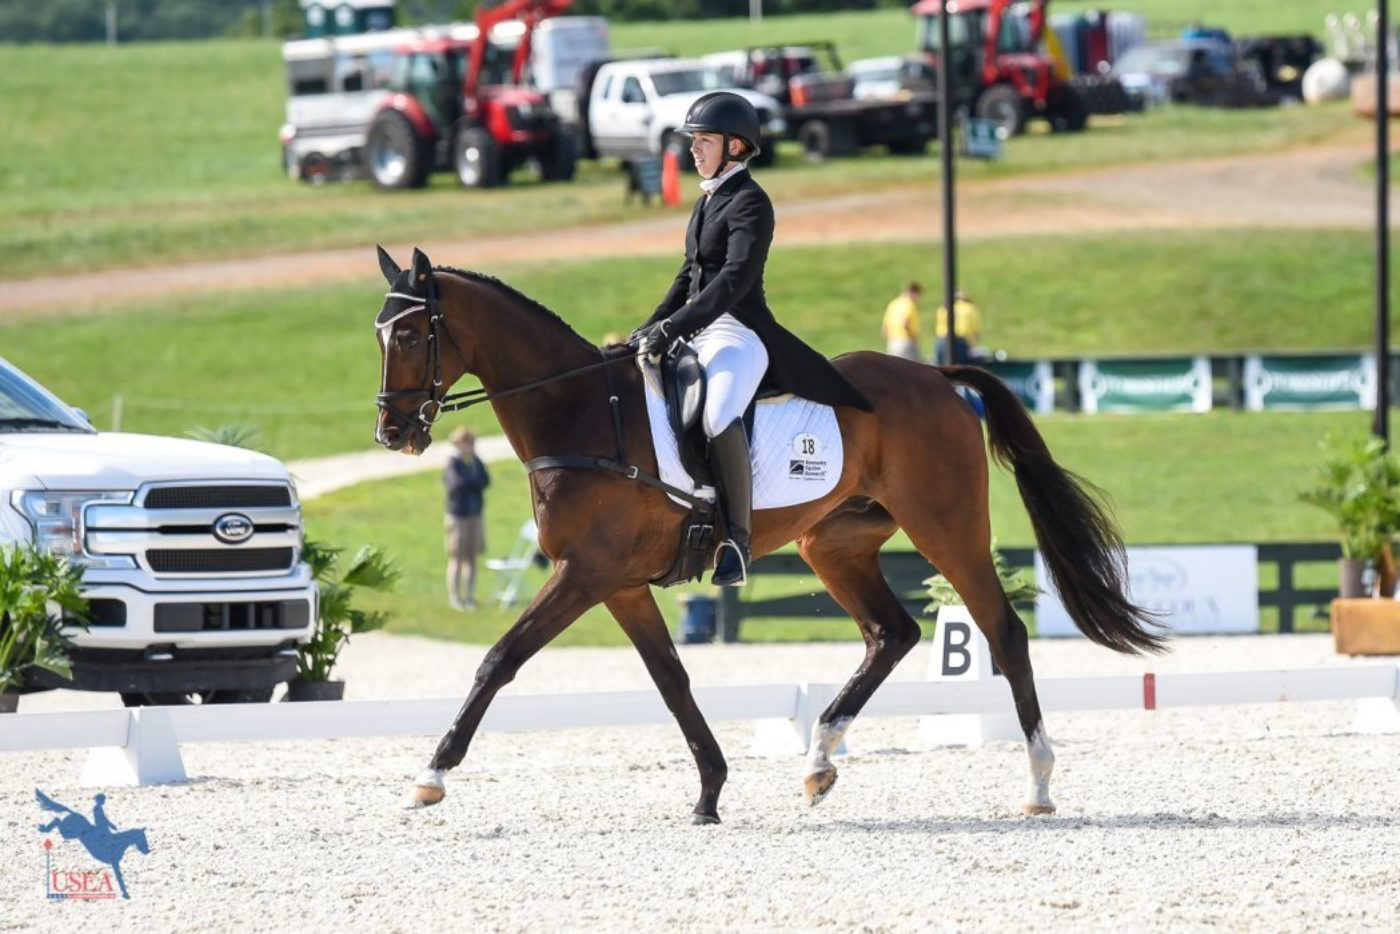 44th - Laura Welsh and Galactic - 46.5